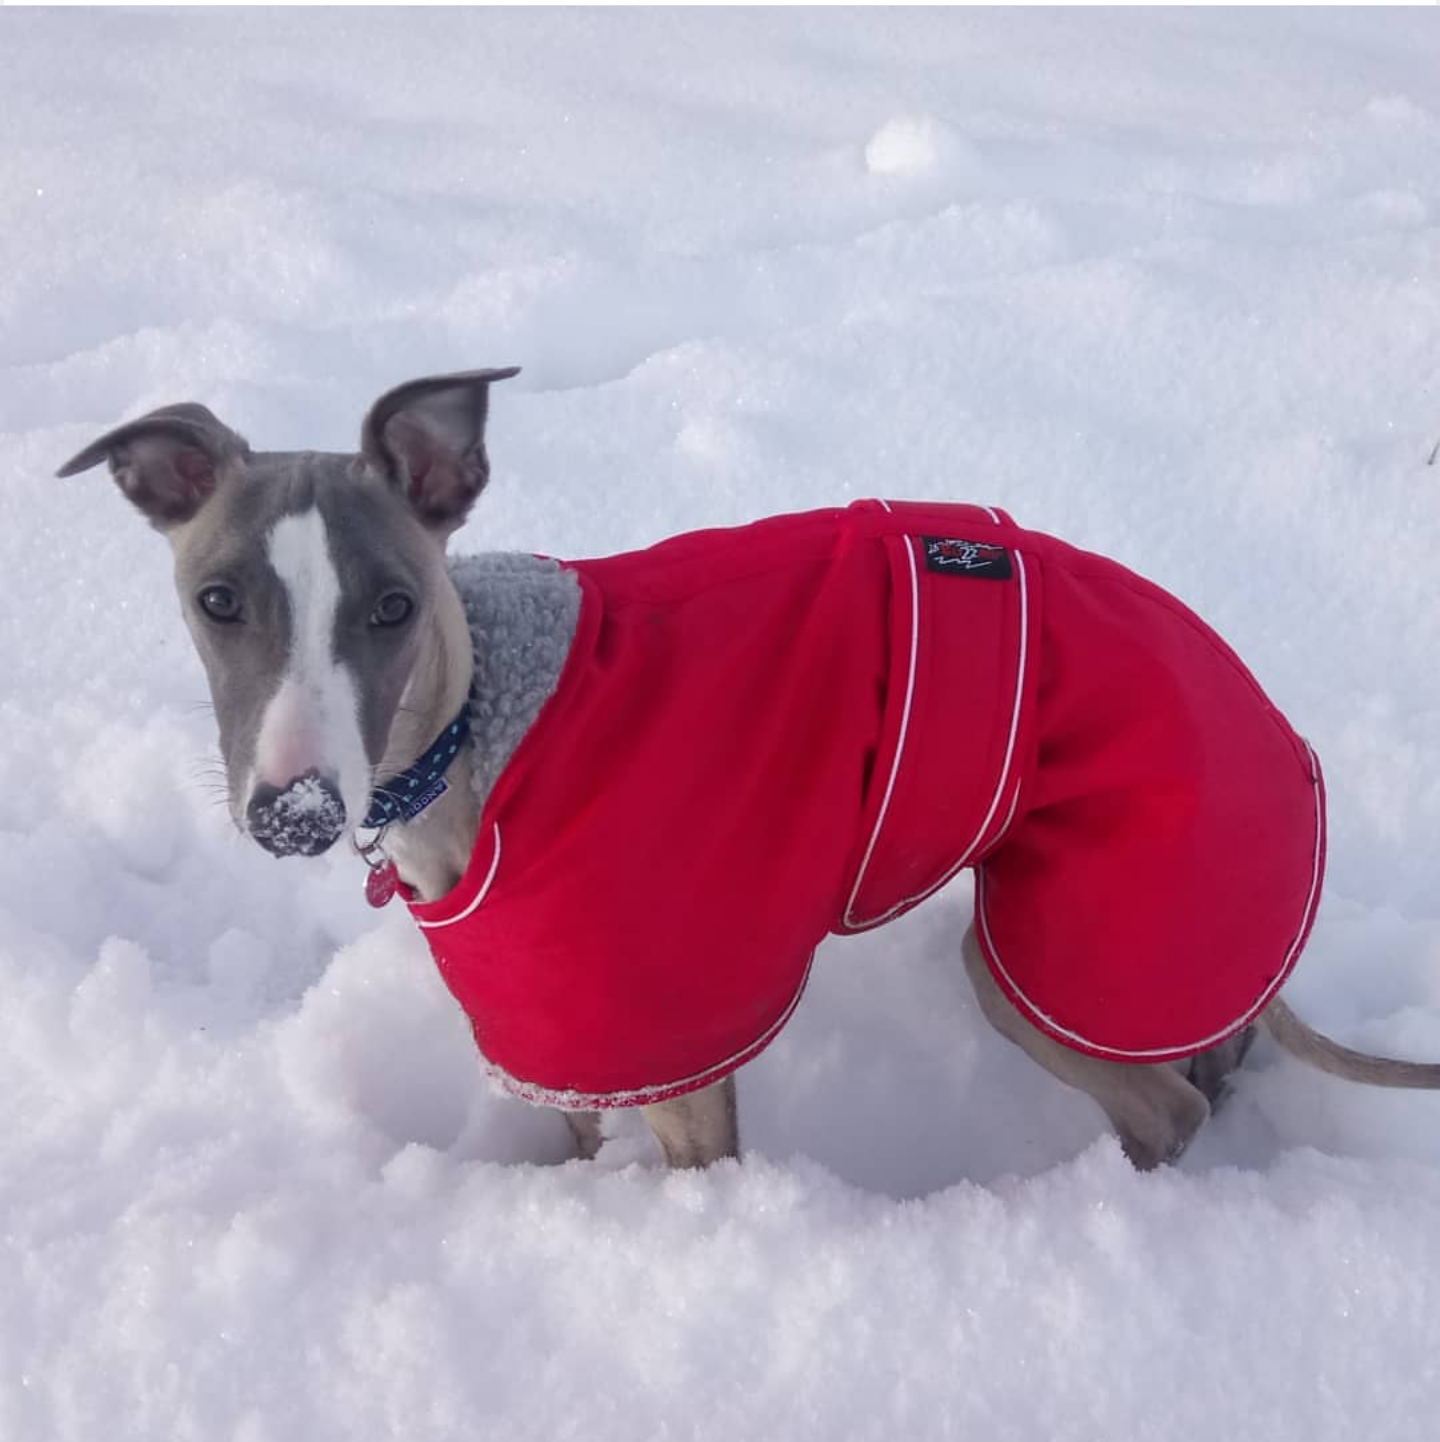 Pointy Faces Whippet Winter Coat